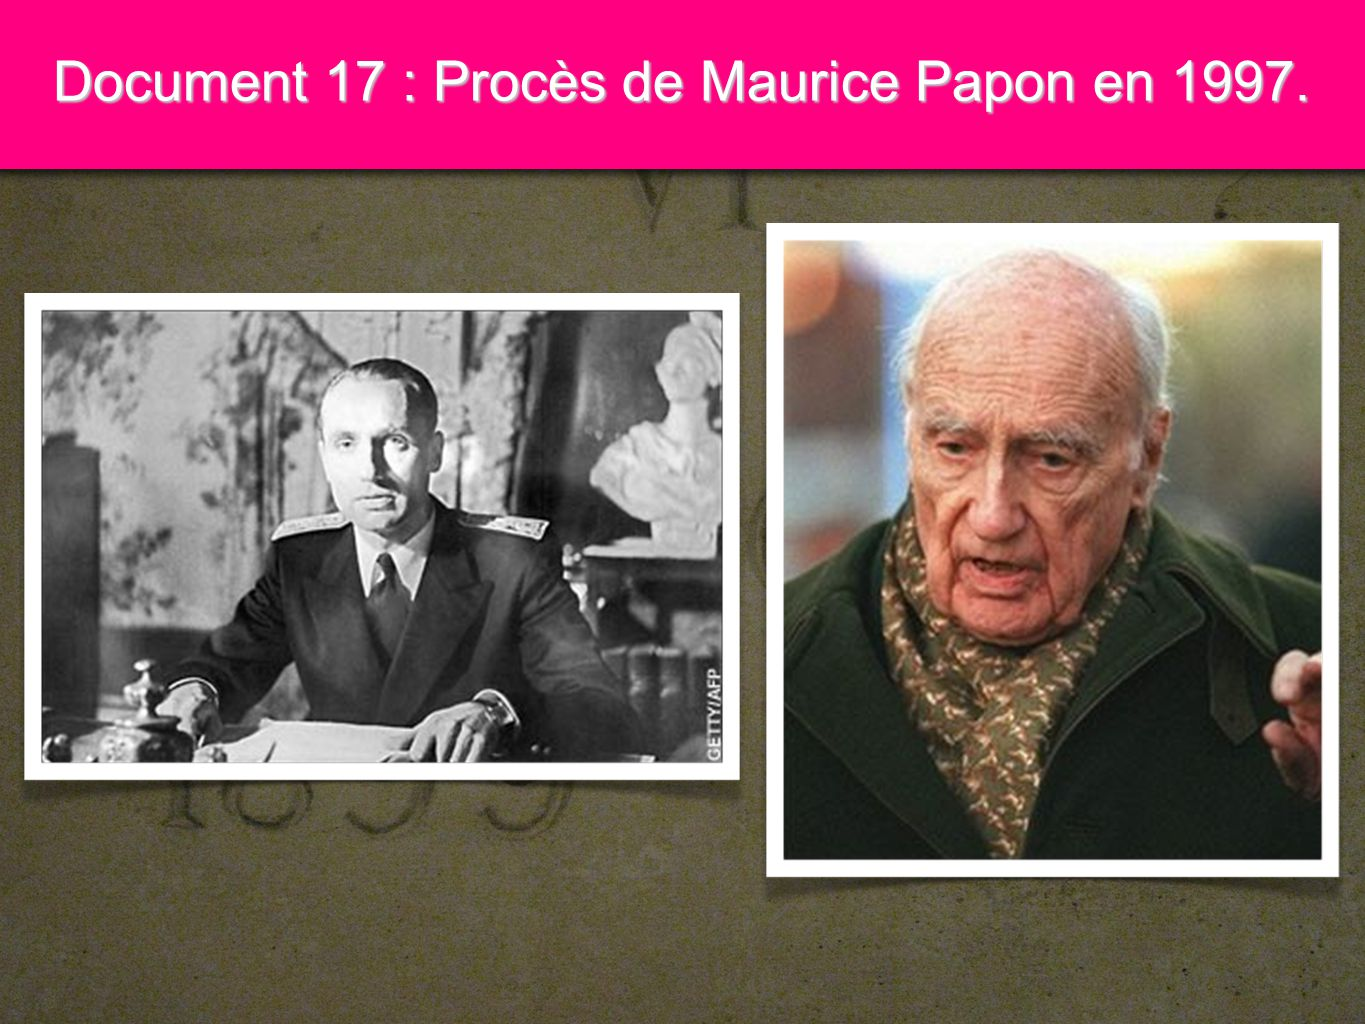 9 Document 17 : Procès de Maurice Papon en 1997.